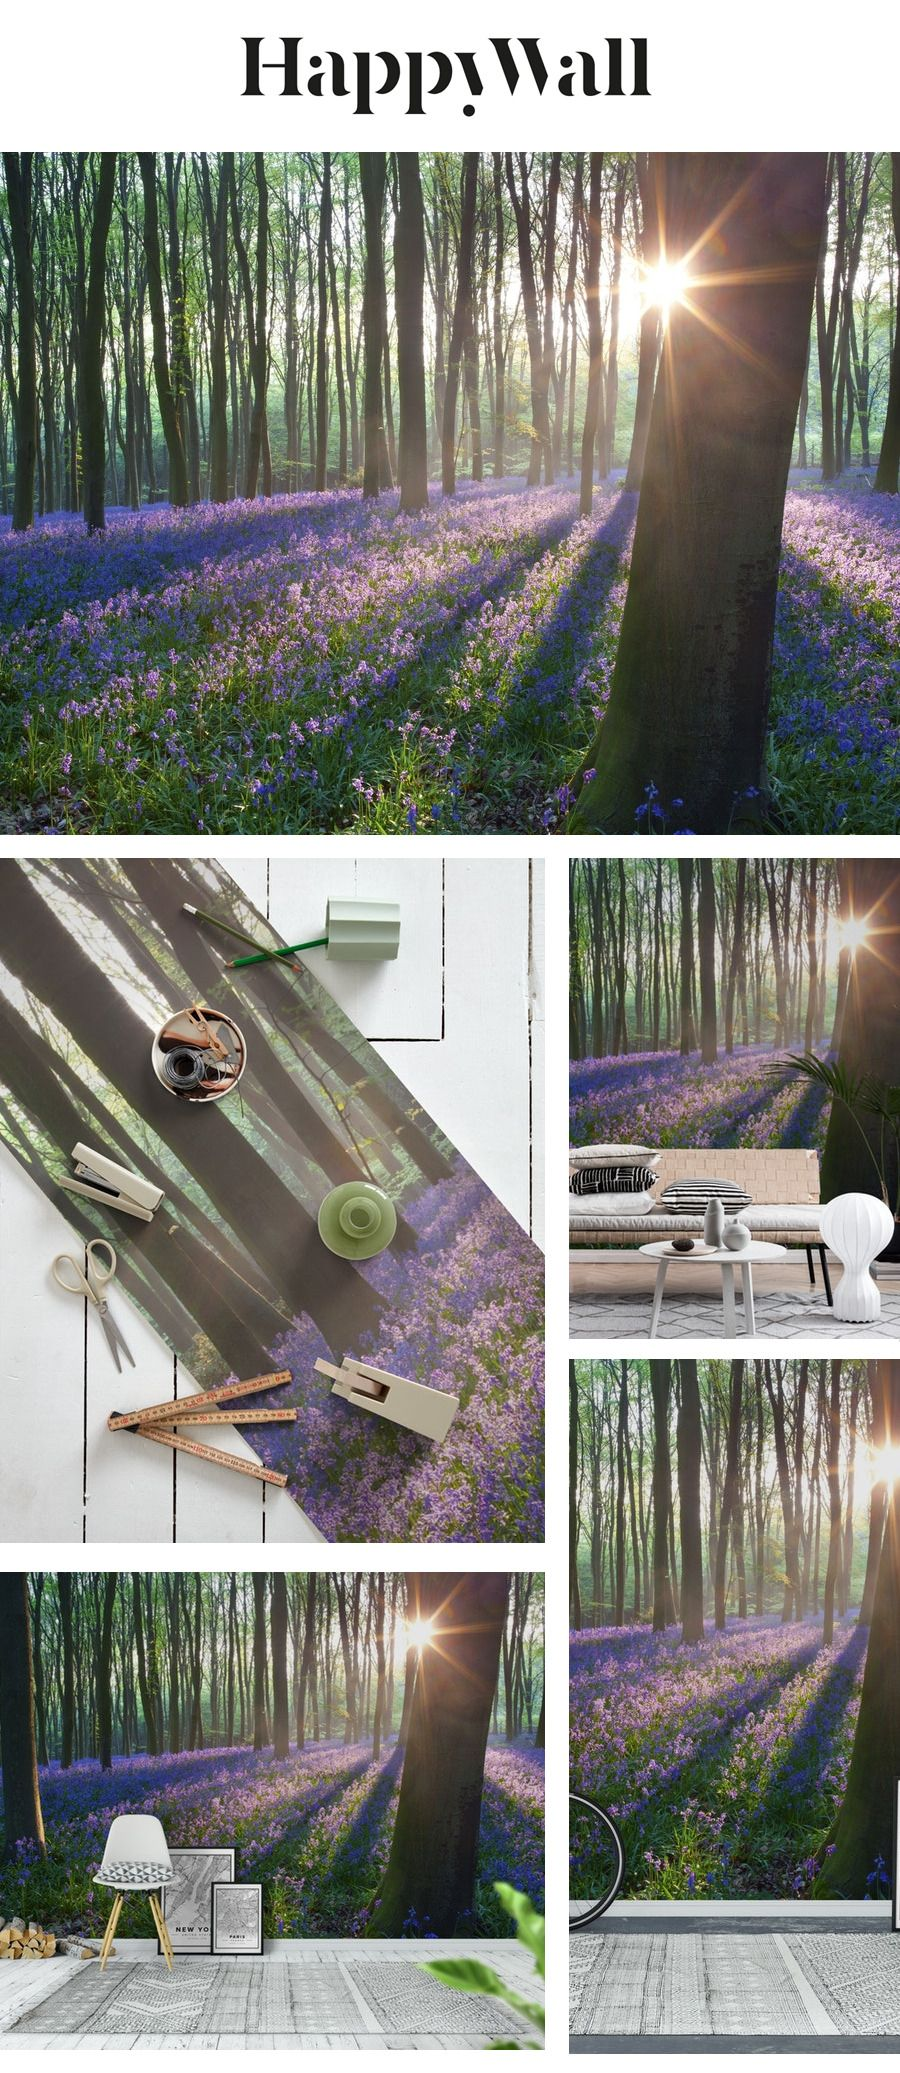 Bluebell woods wall mural from Happywall bedroom